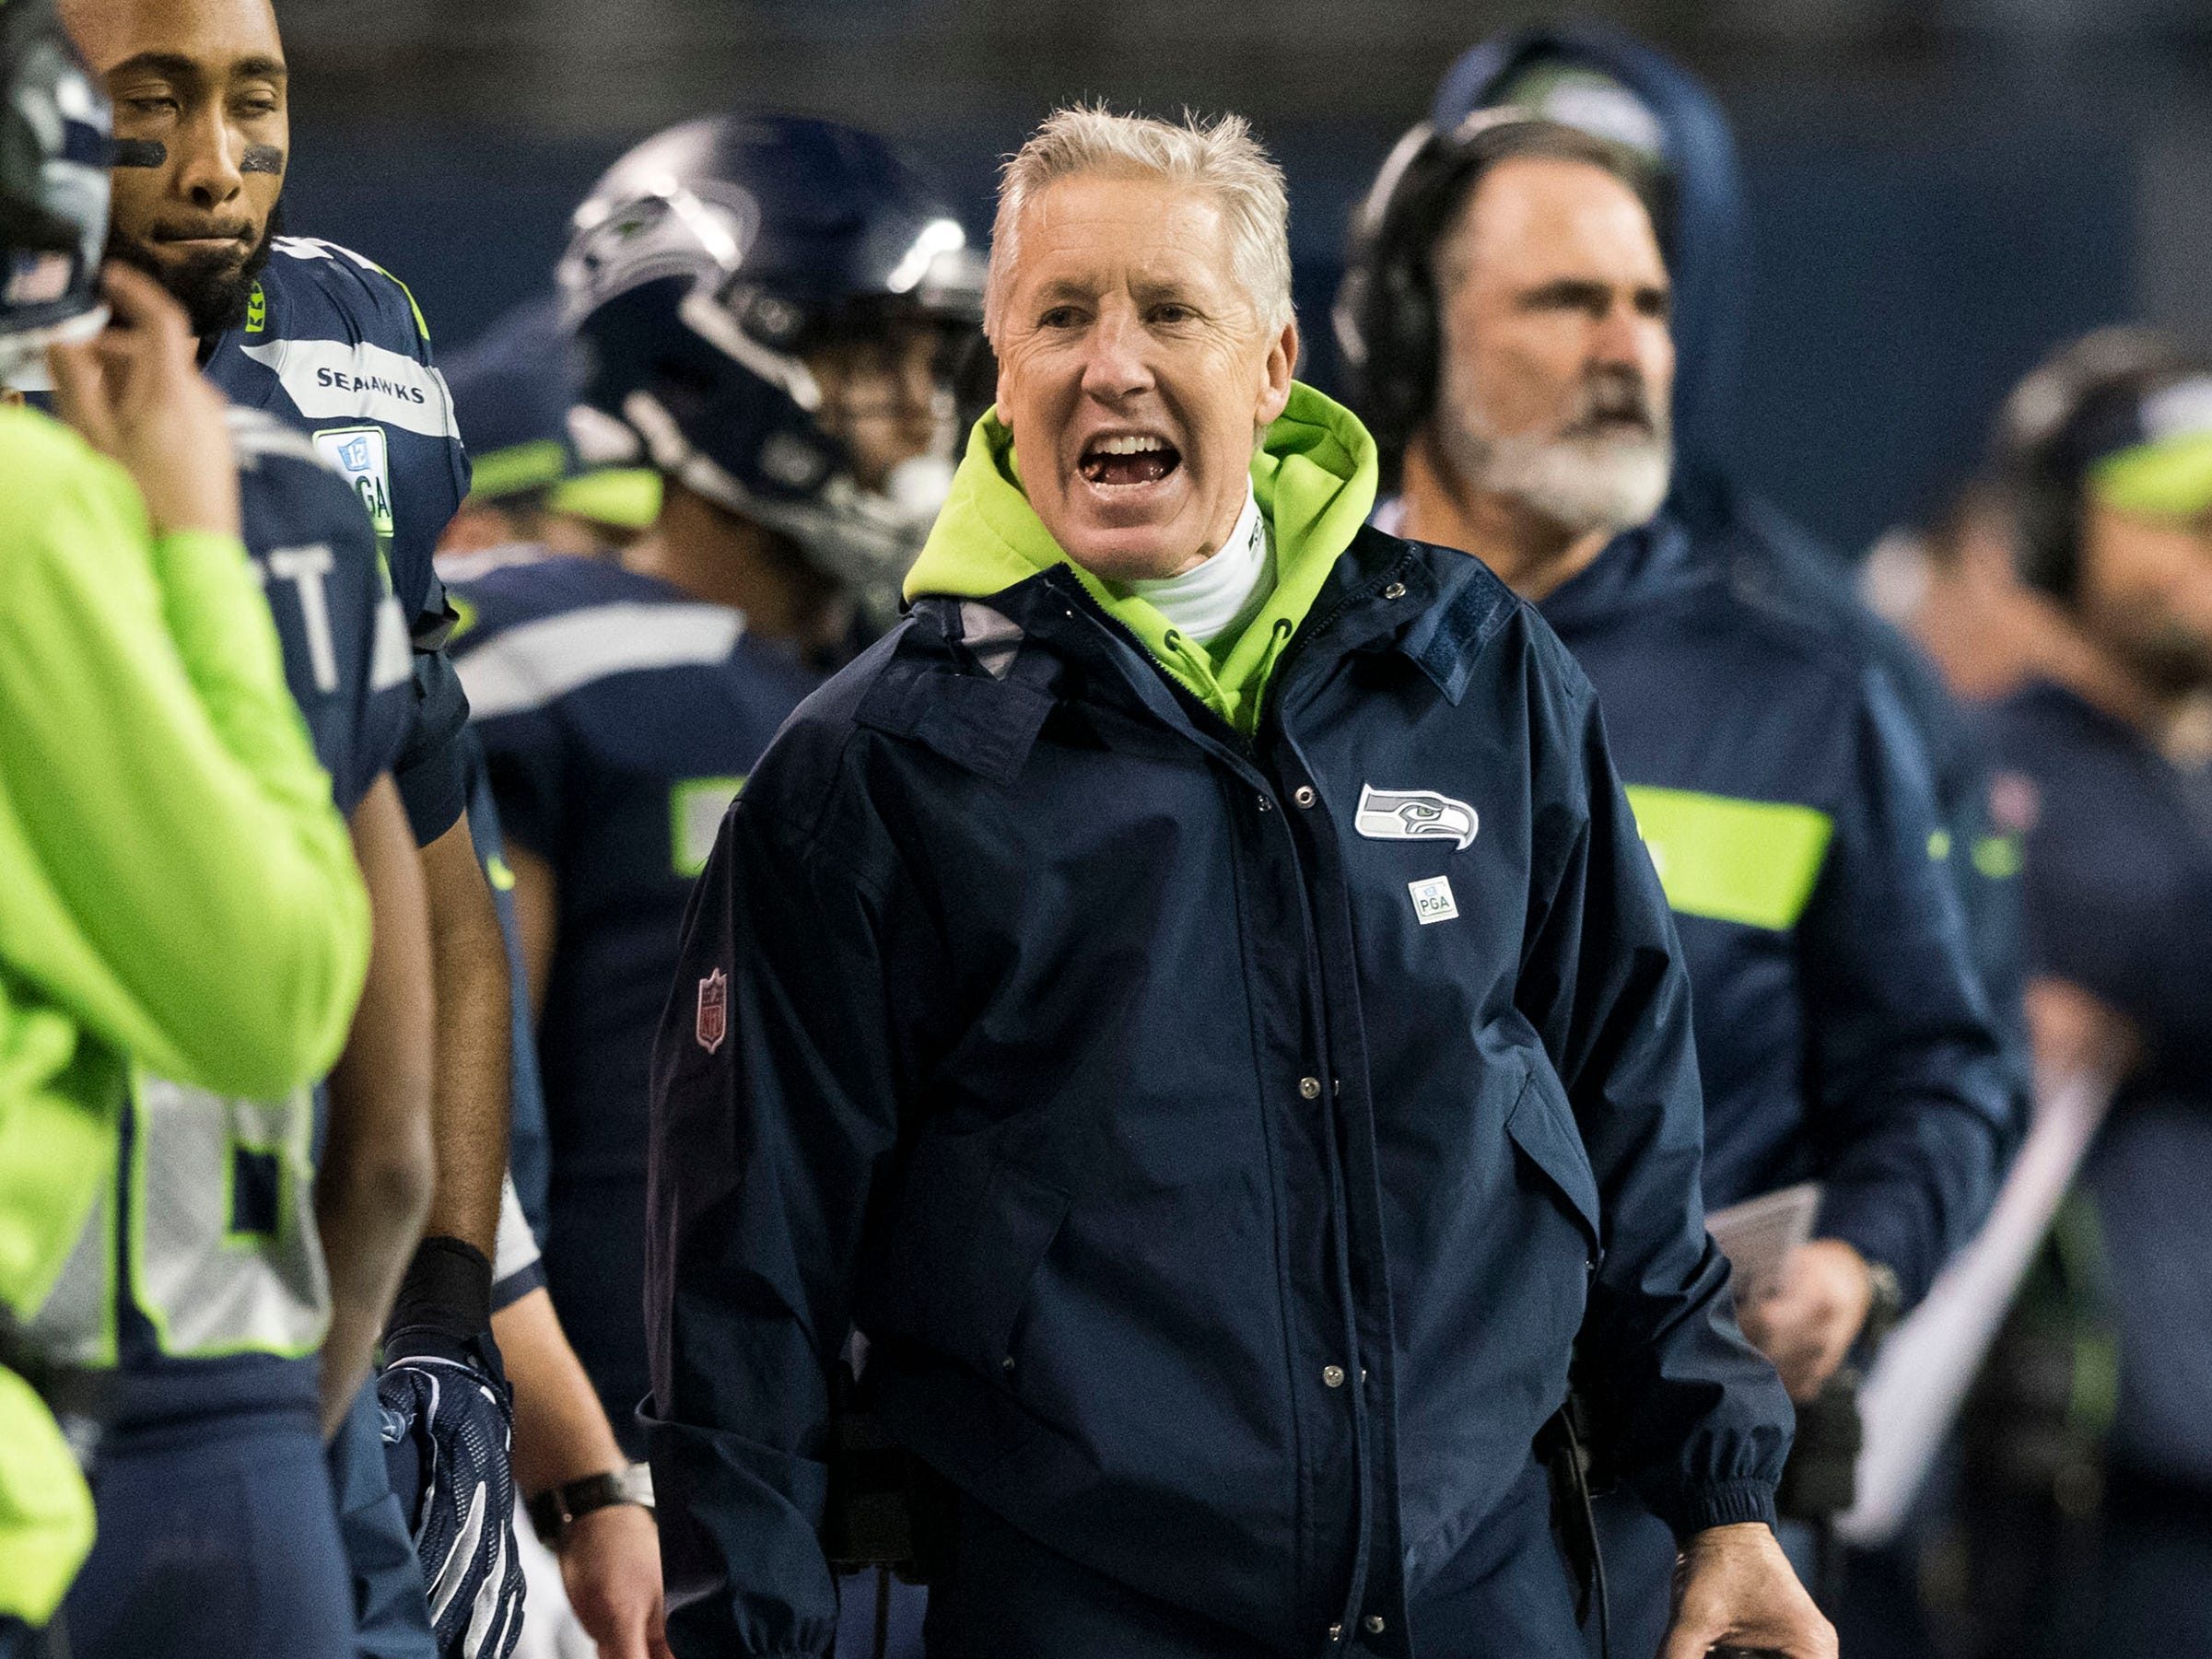 8. Seahawks (12): Pete Carroll deserves major coach of the year consideration for what may be his best performance. He certainly deserved that extension.